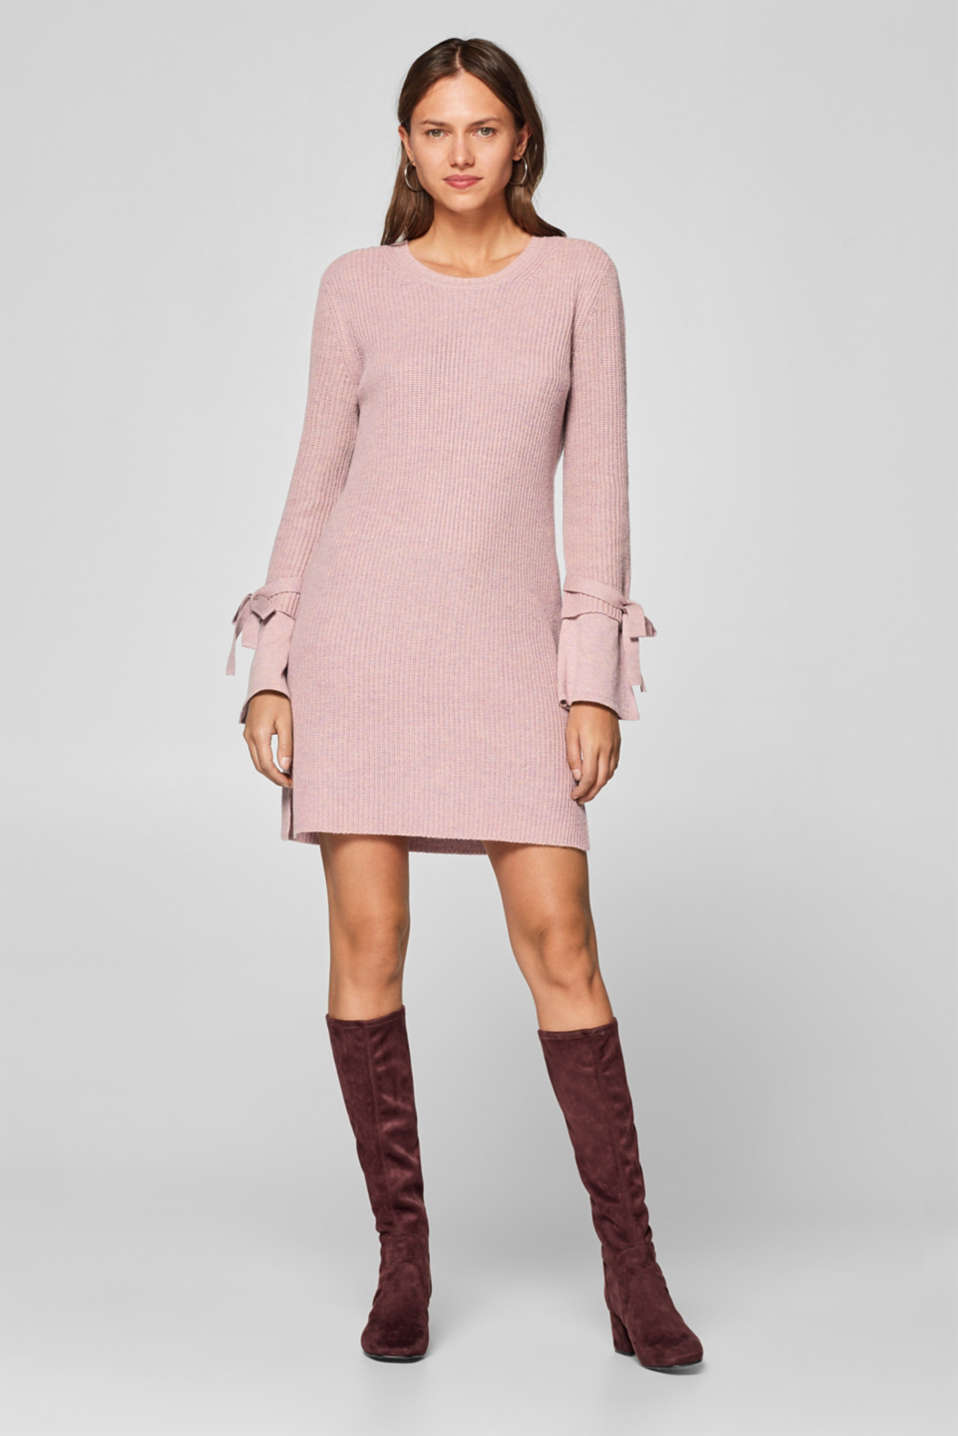 Esprit - With cashmere: knitted dress with bows on the sleeves